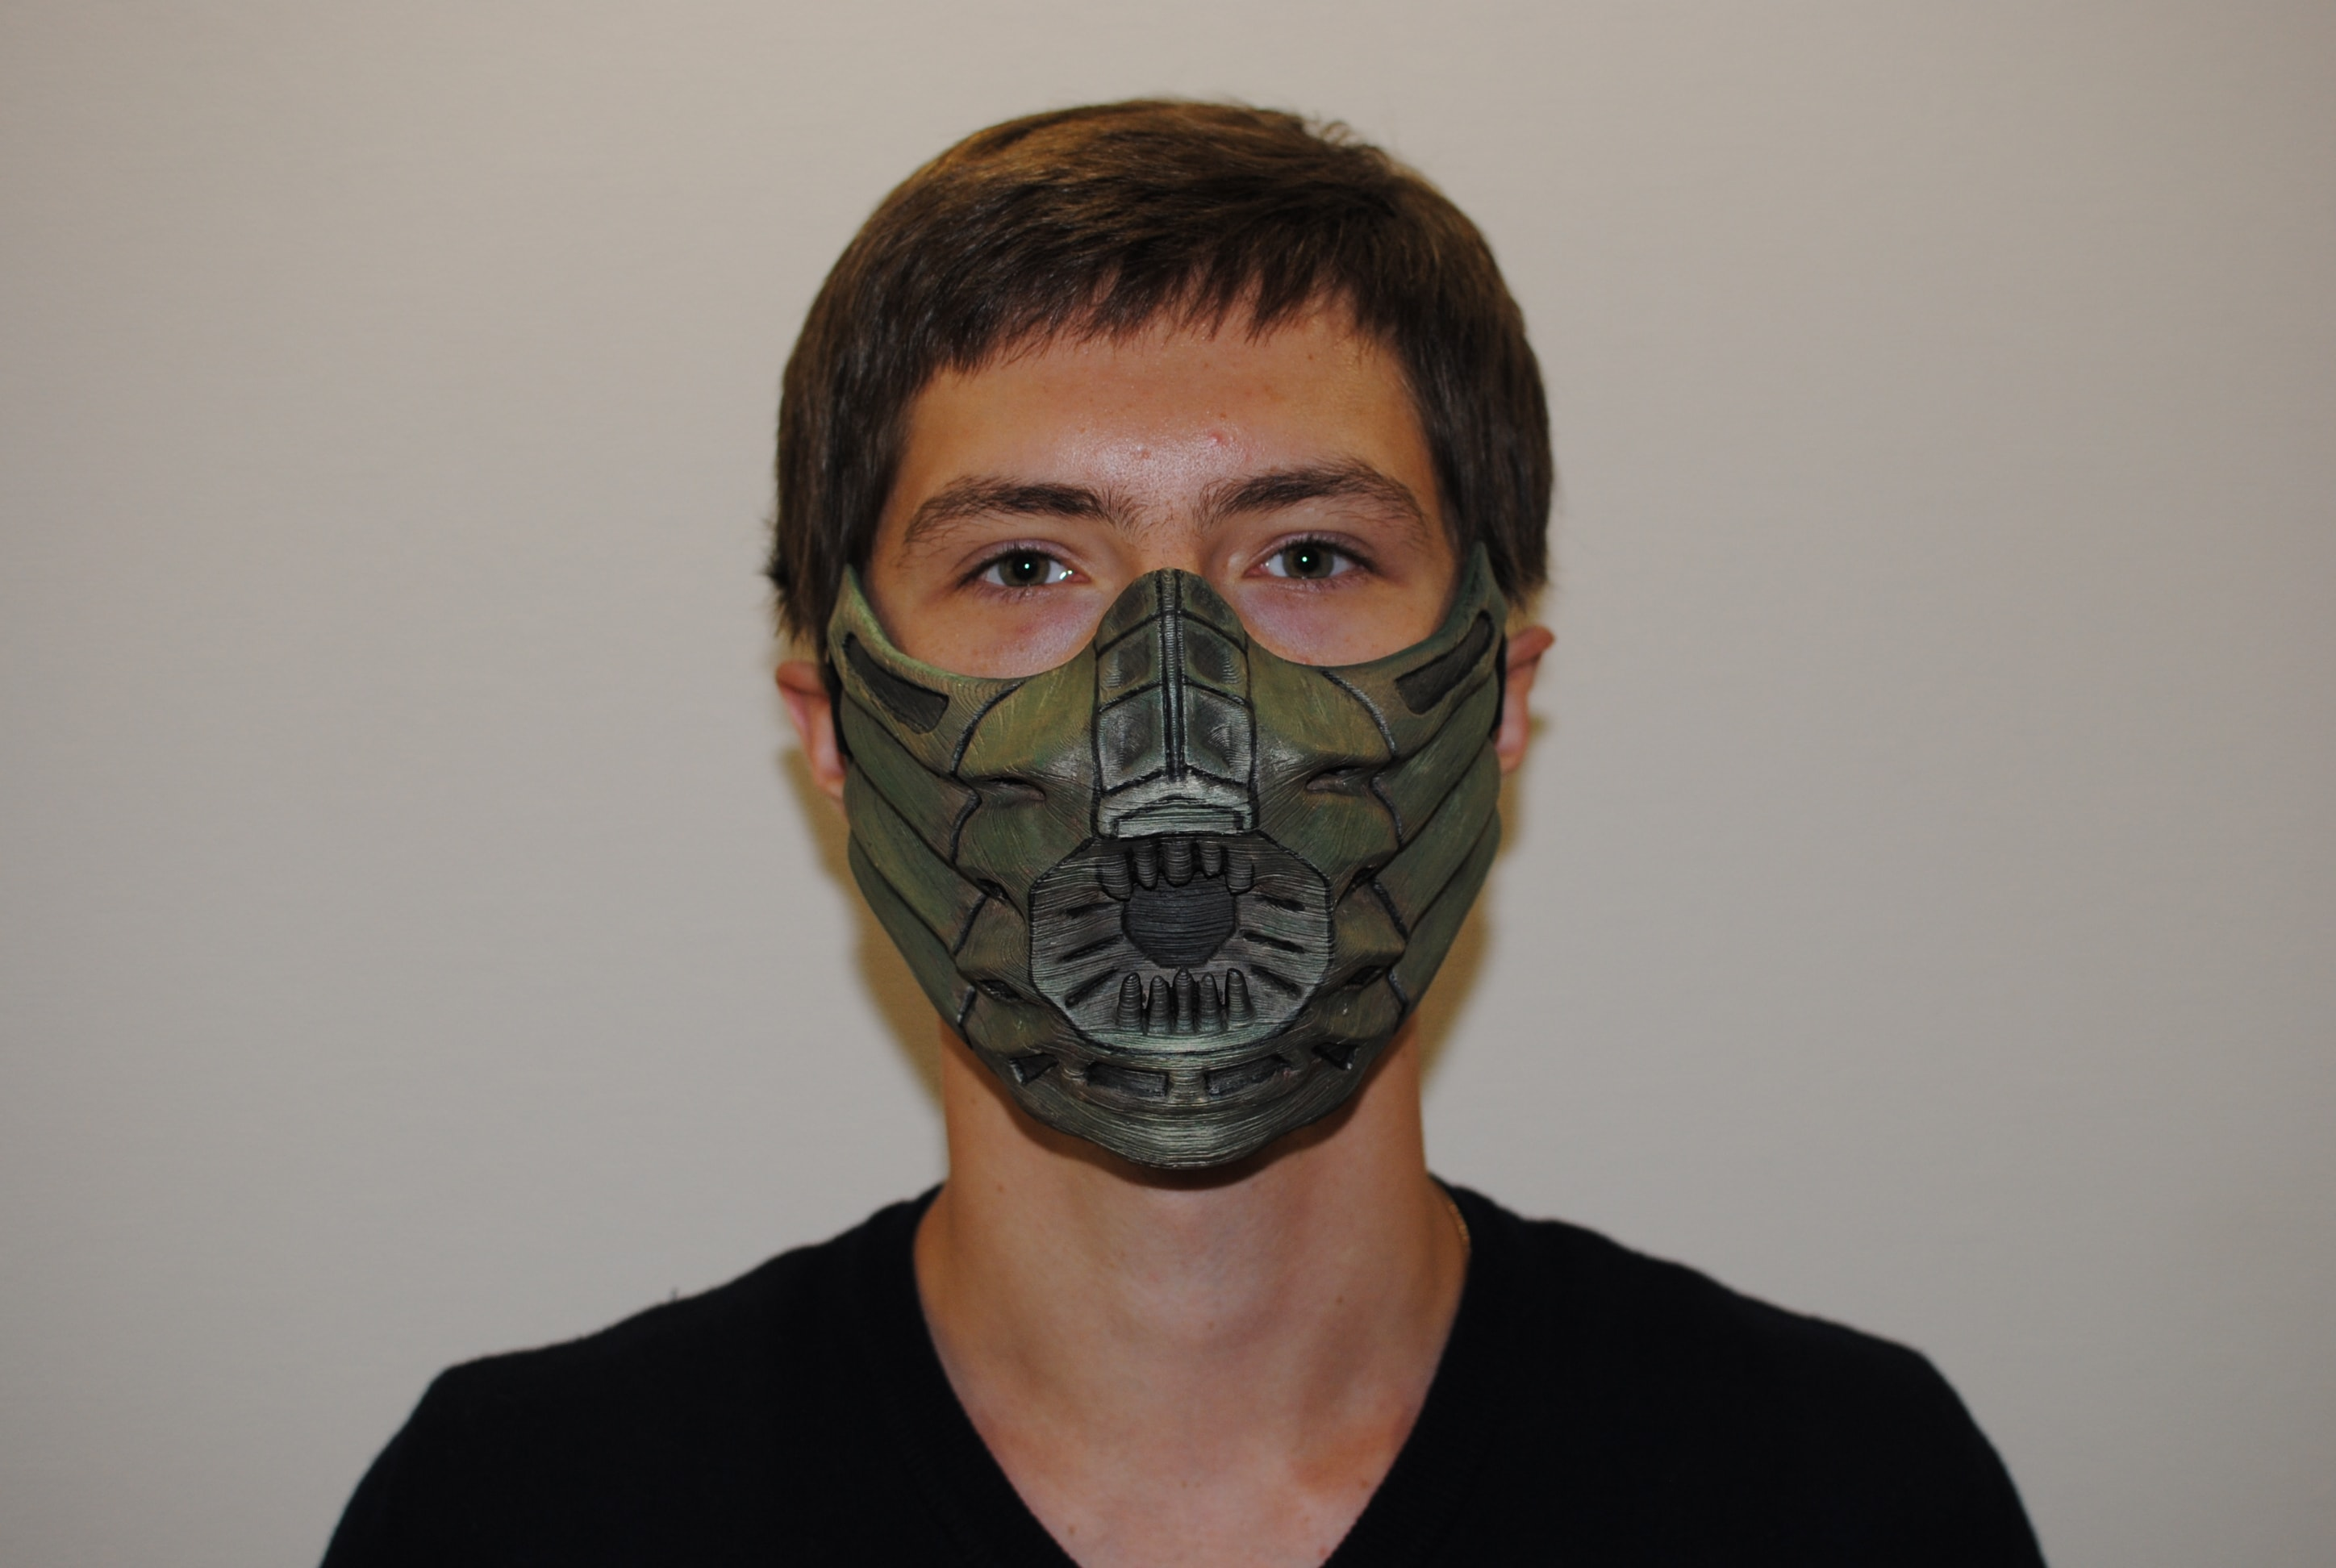 Reptile Mask From Mk Cosplay Or Airsoft Mask Costumes